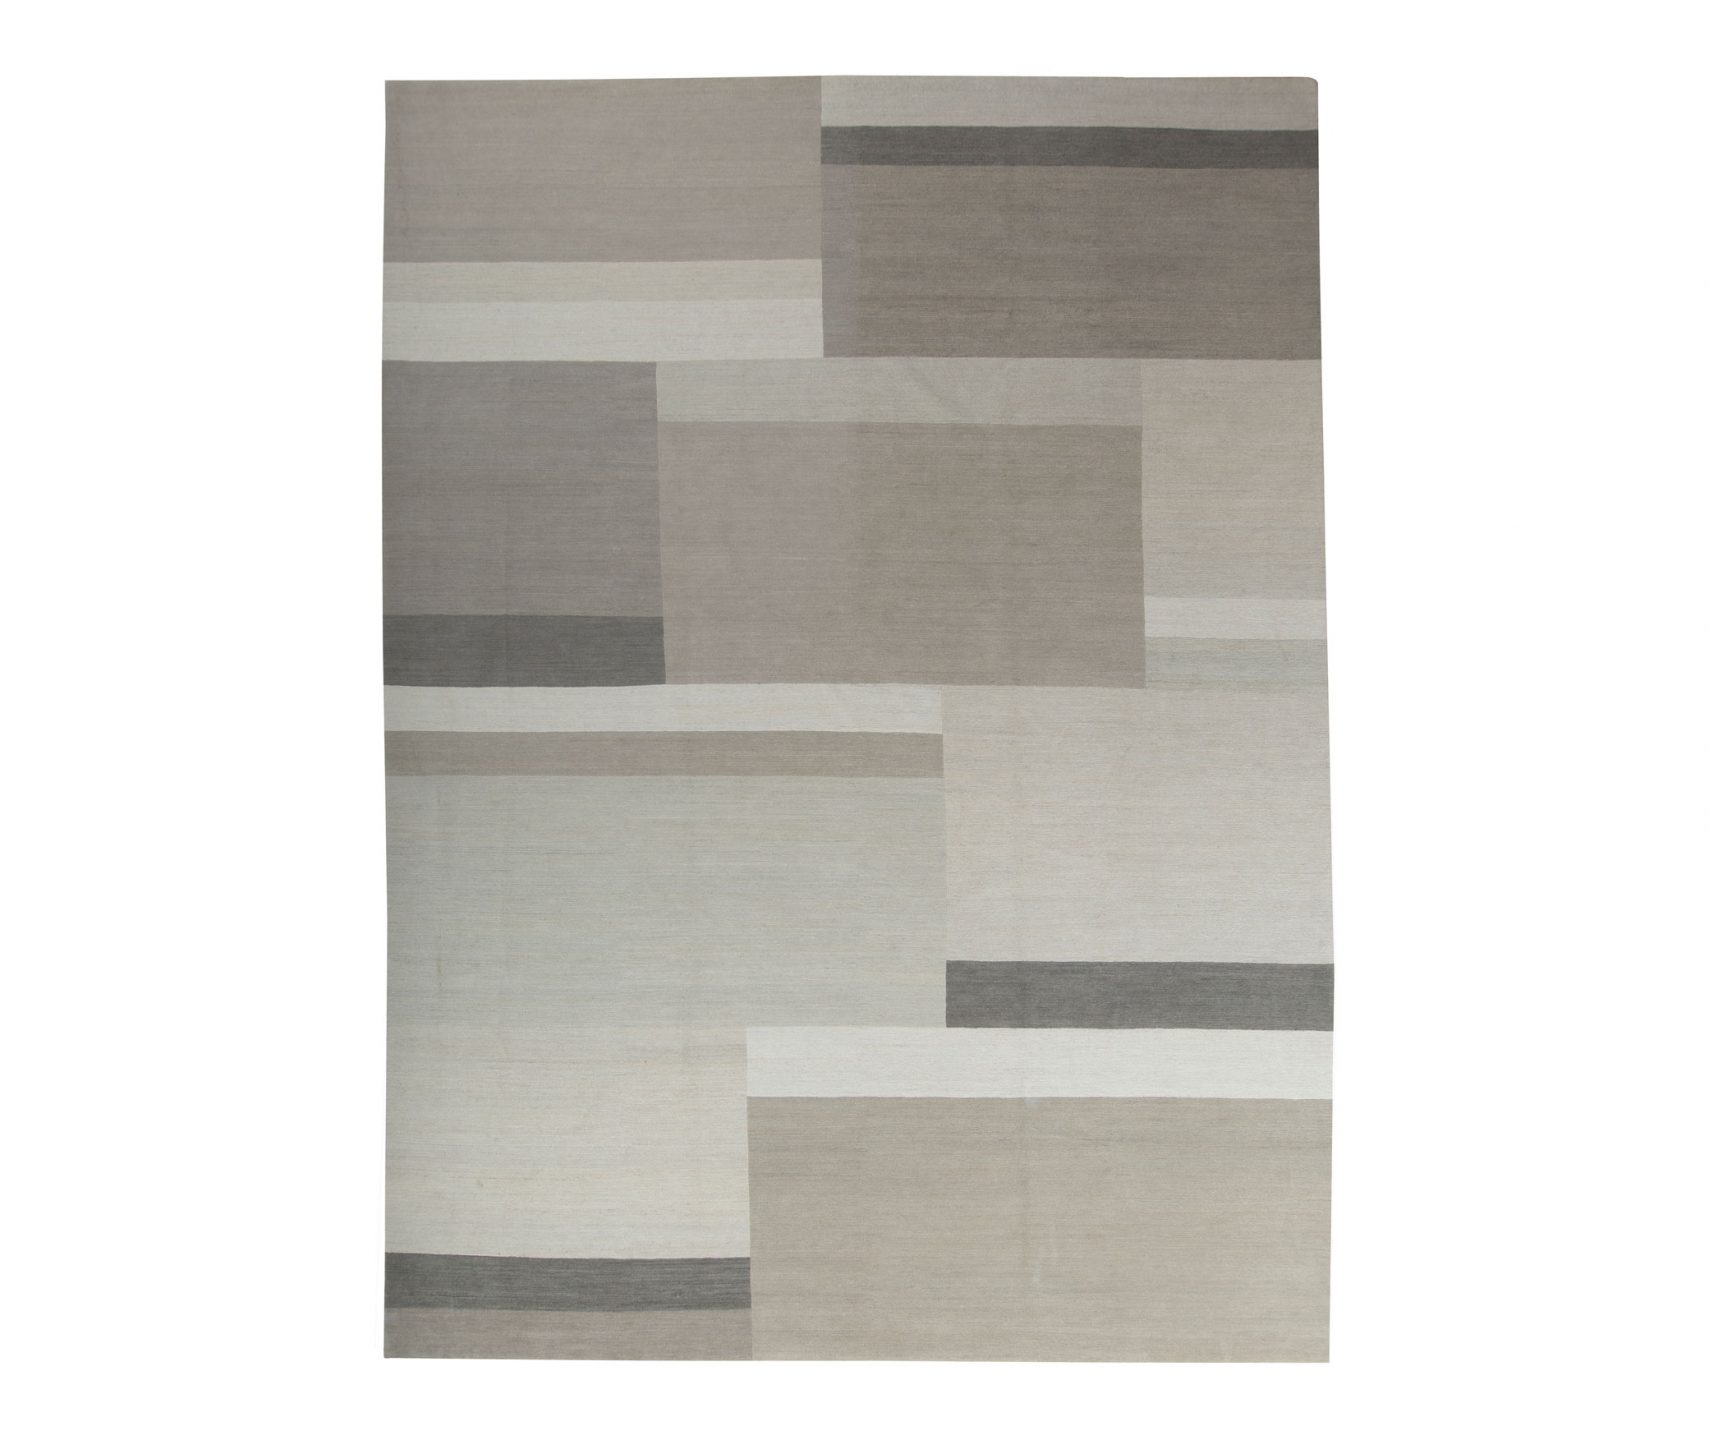 Pangden_OdegardCarpets_int_products